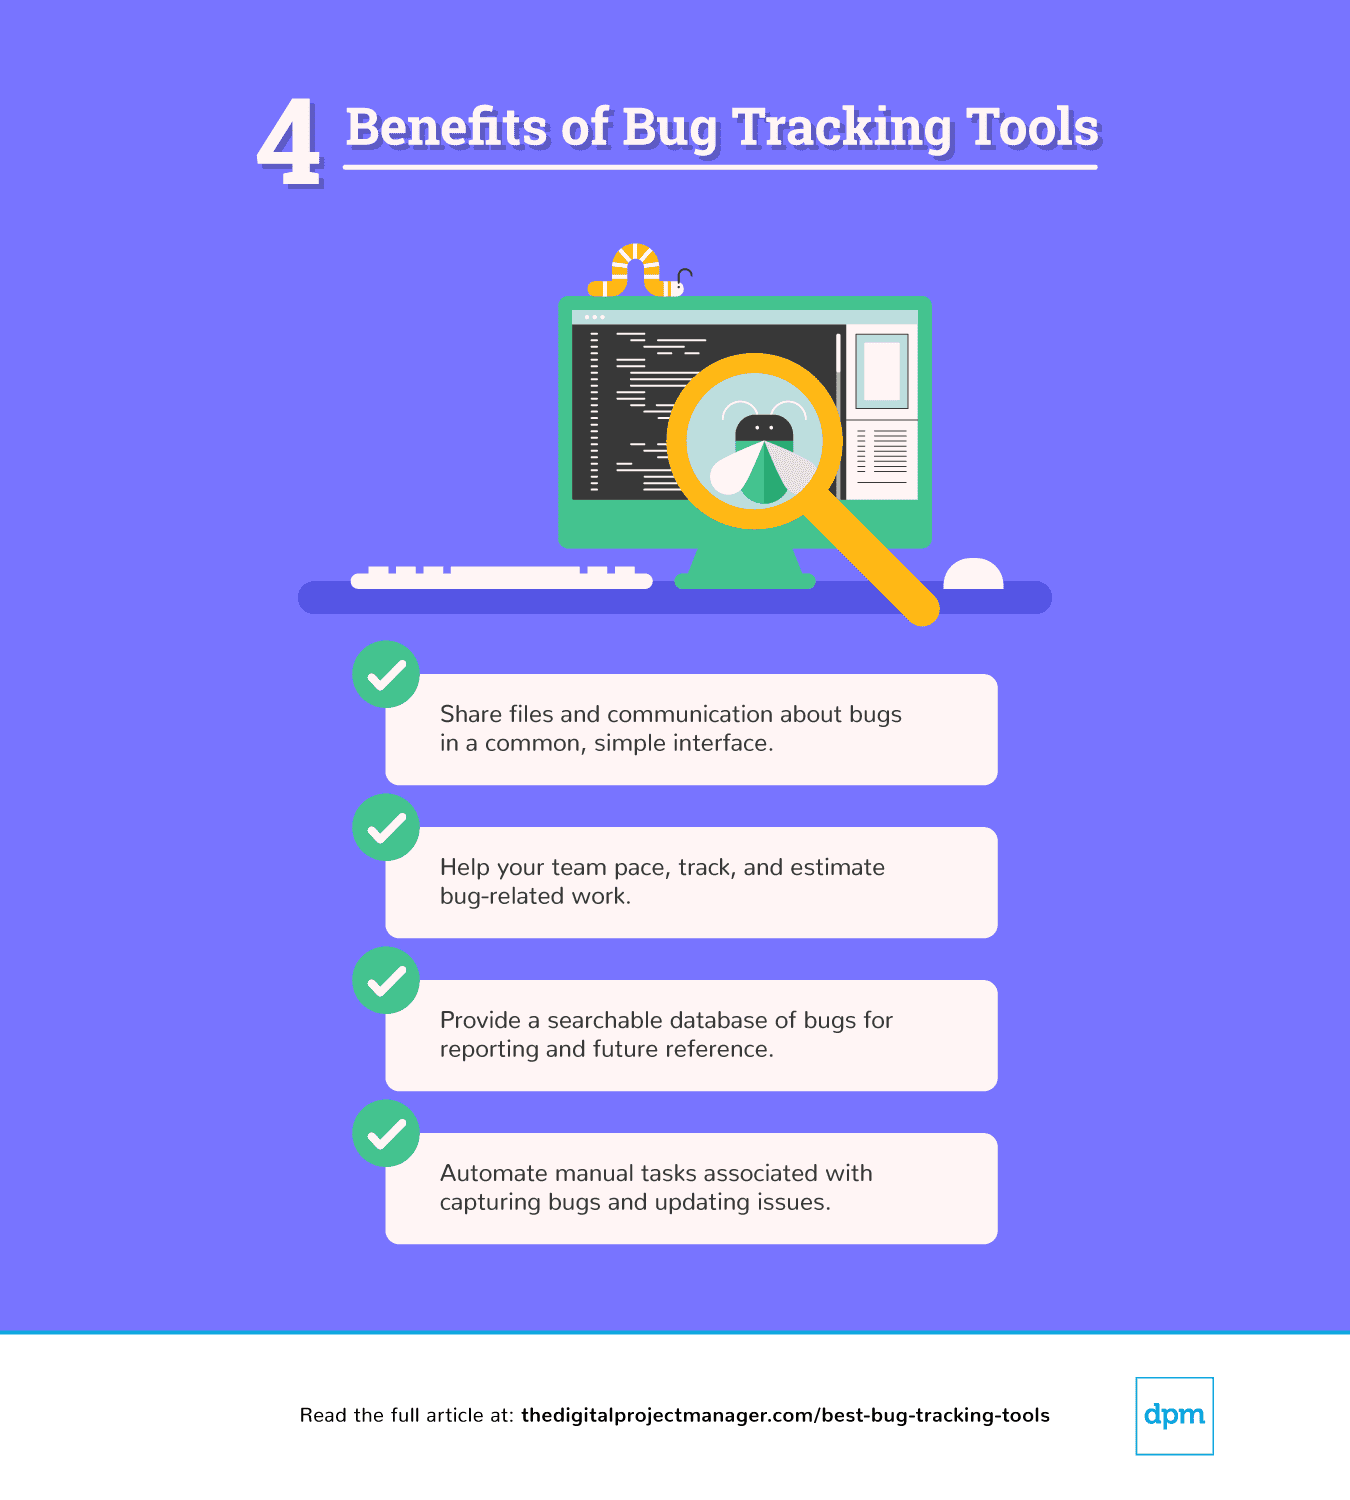 Benefits of bug tracking tools